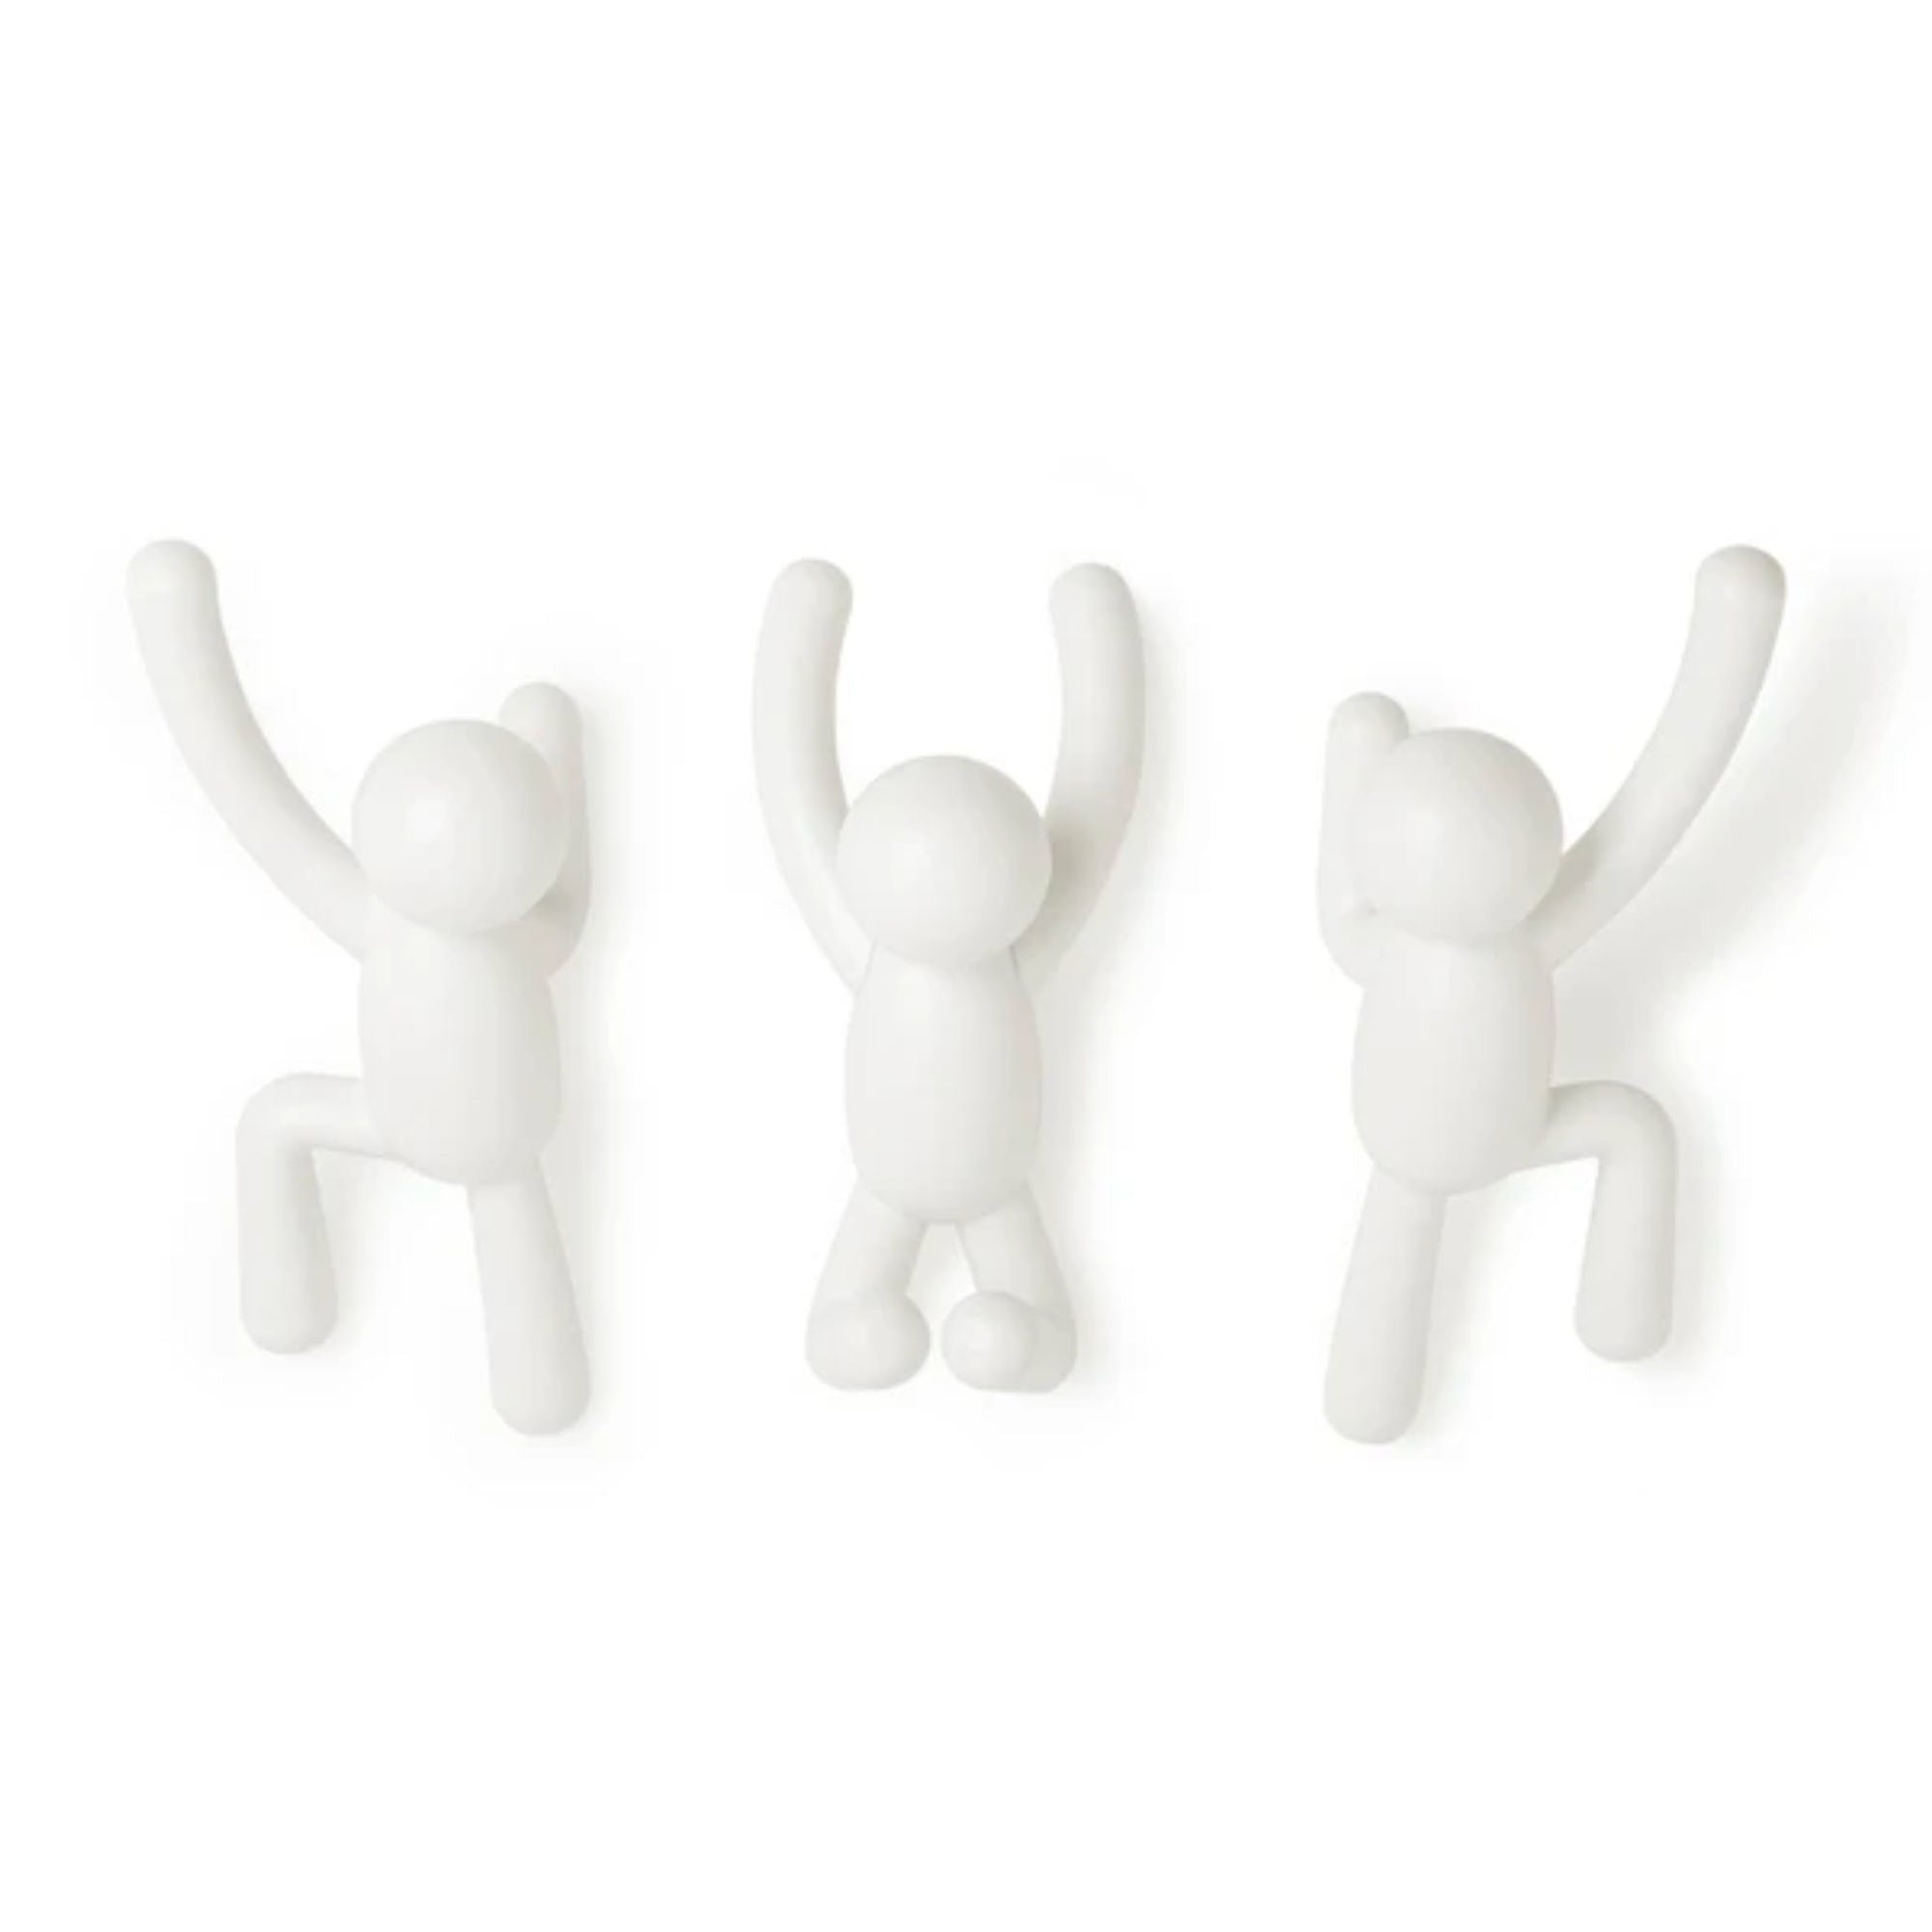 Umbra Buddy wall hooks, white